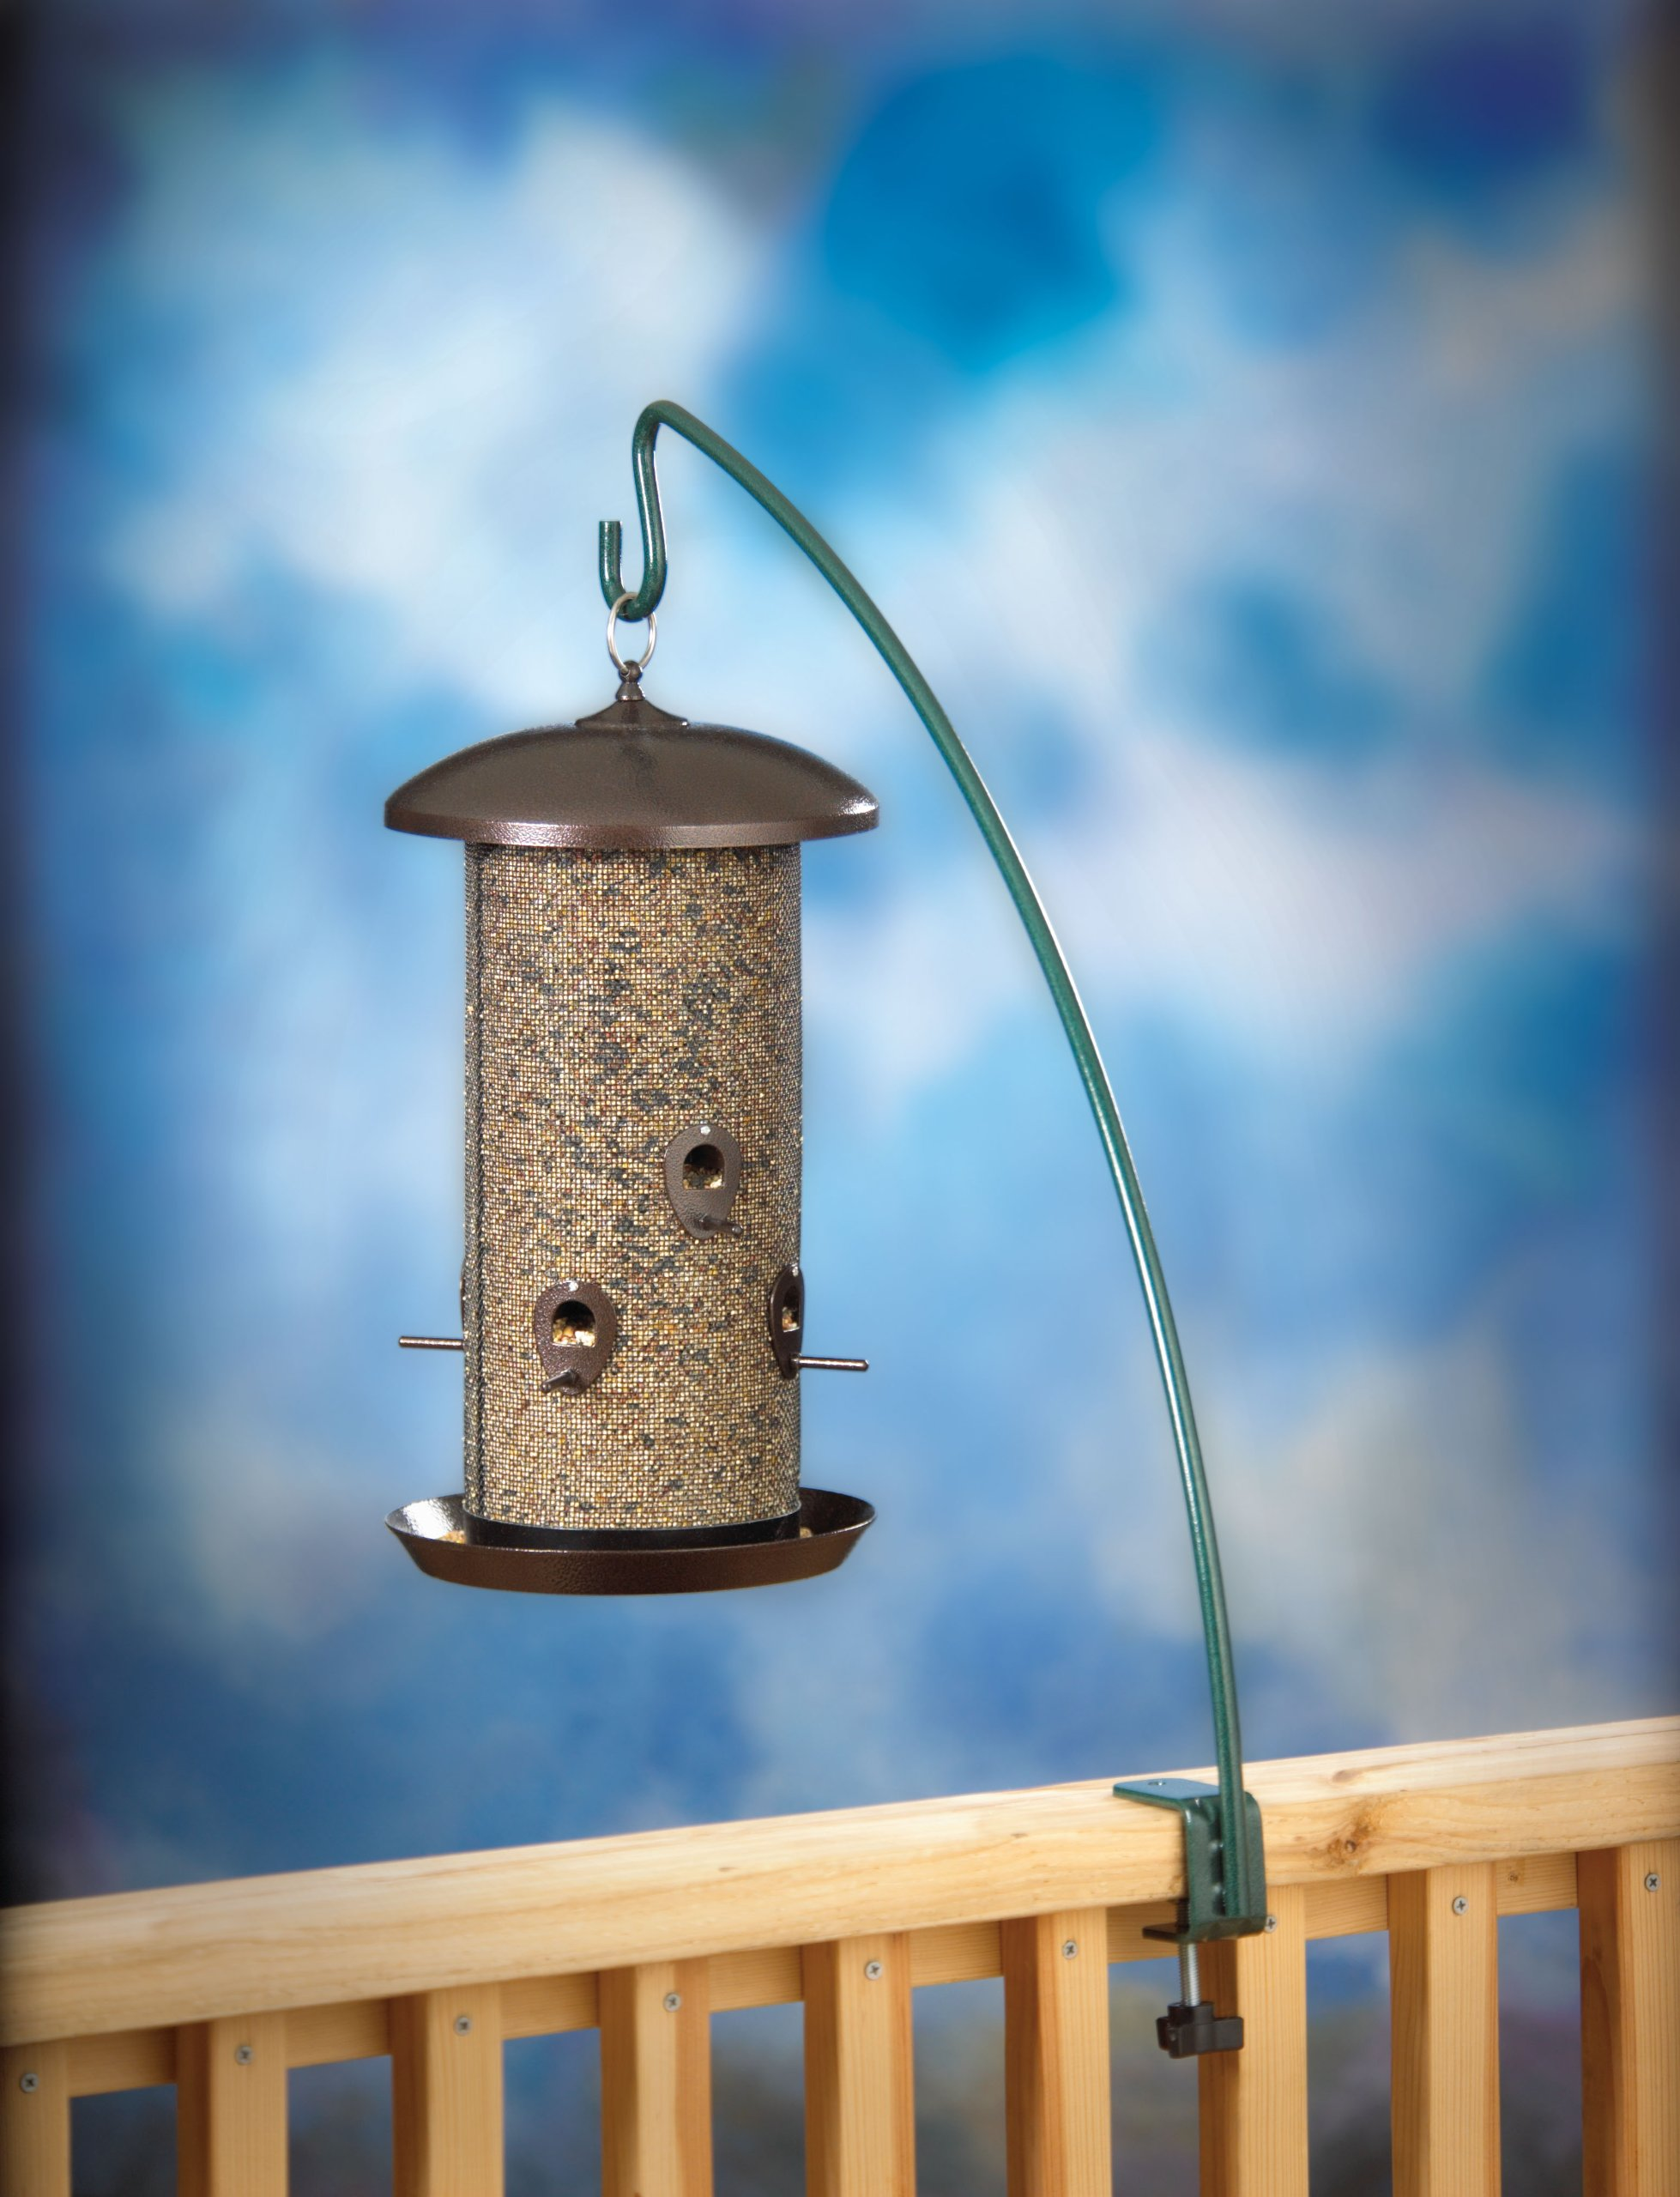 Stokes Select 24-Inch Metal Clamp-On Deck Hook for Bird Feeder (38015)